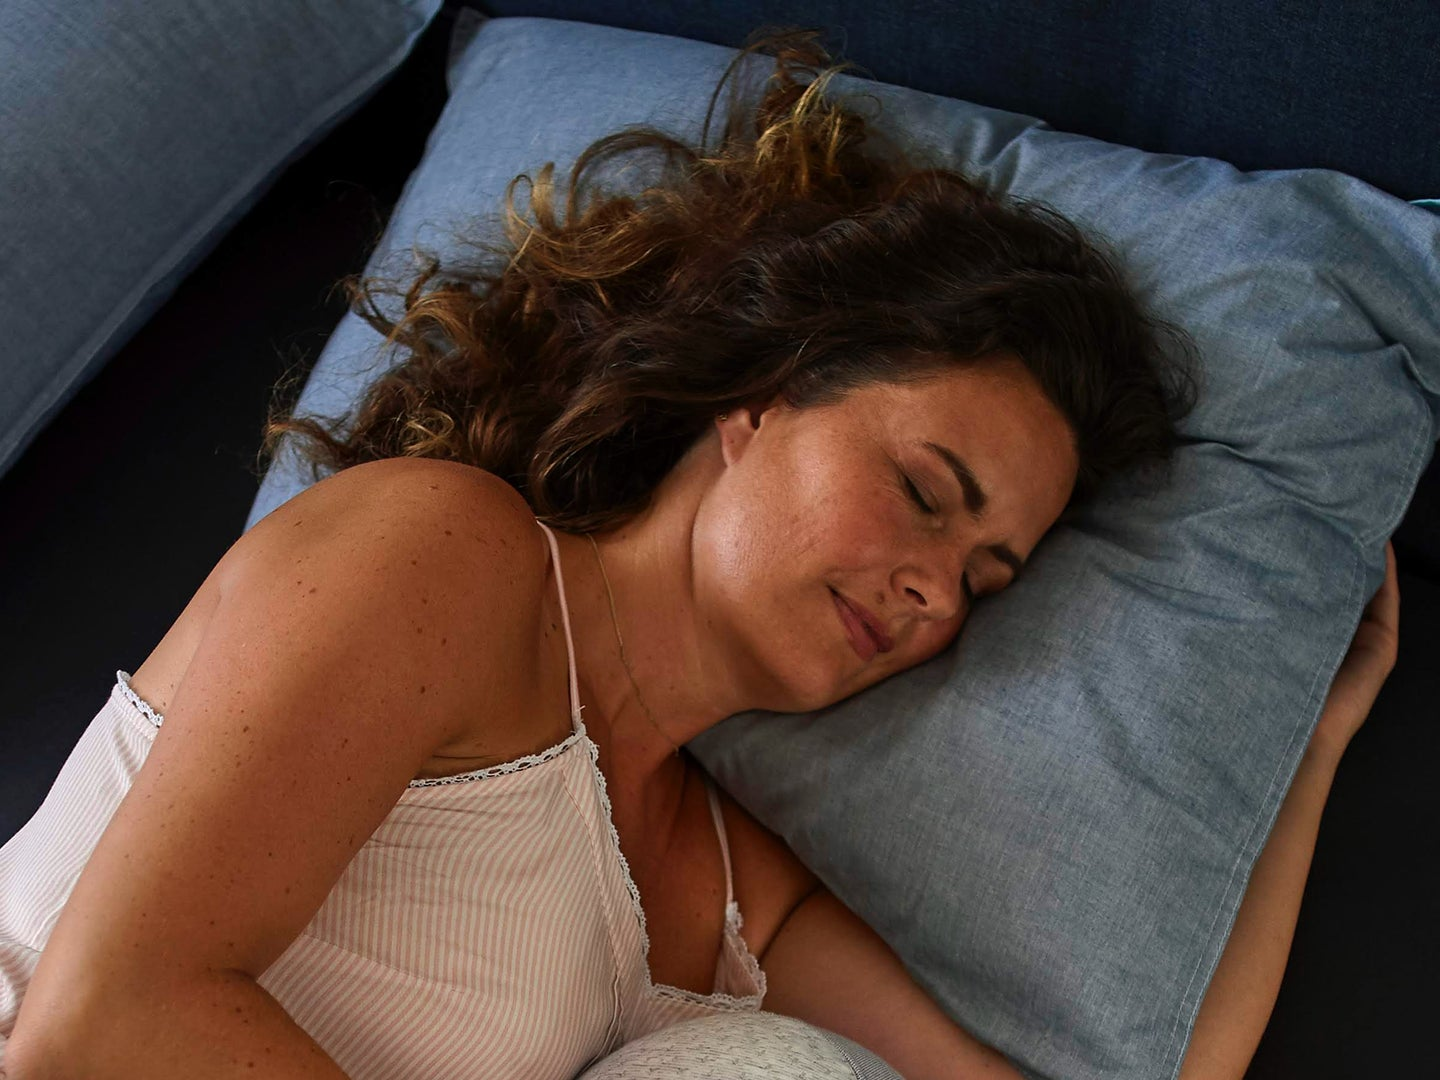 Person sleeping peacefully in bed